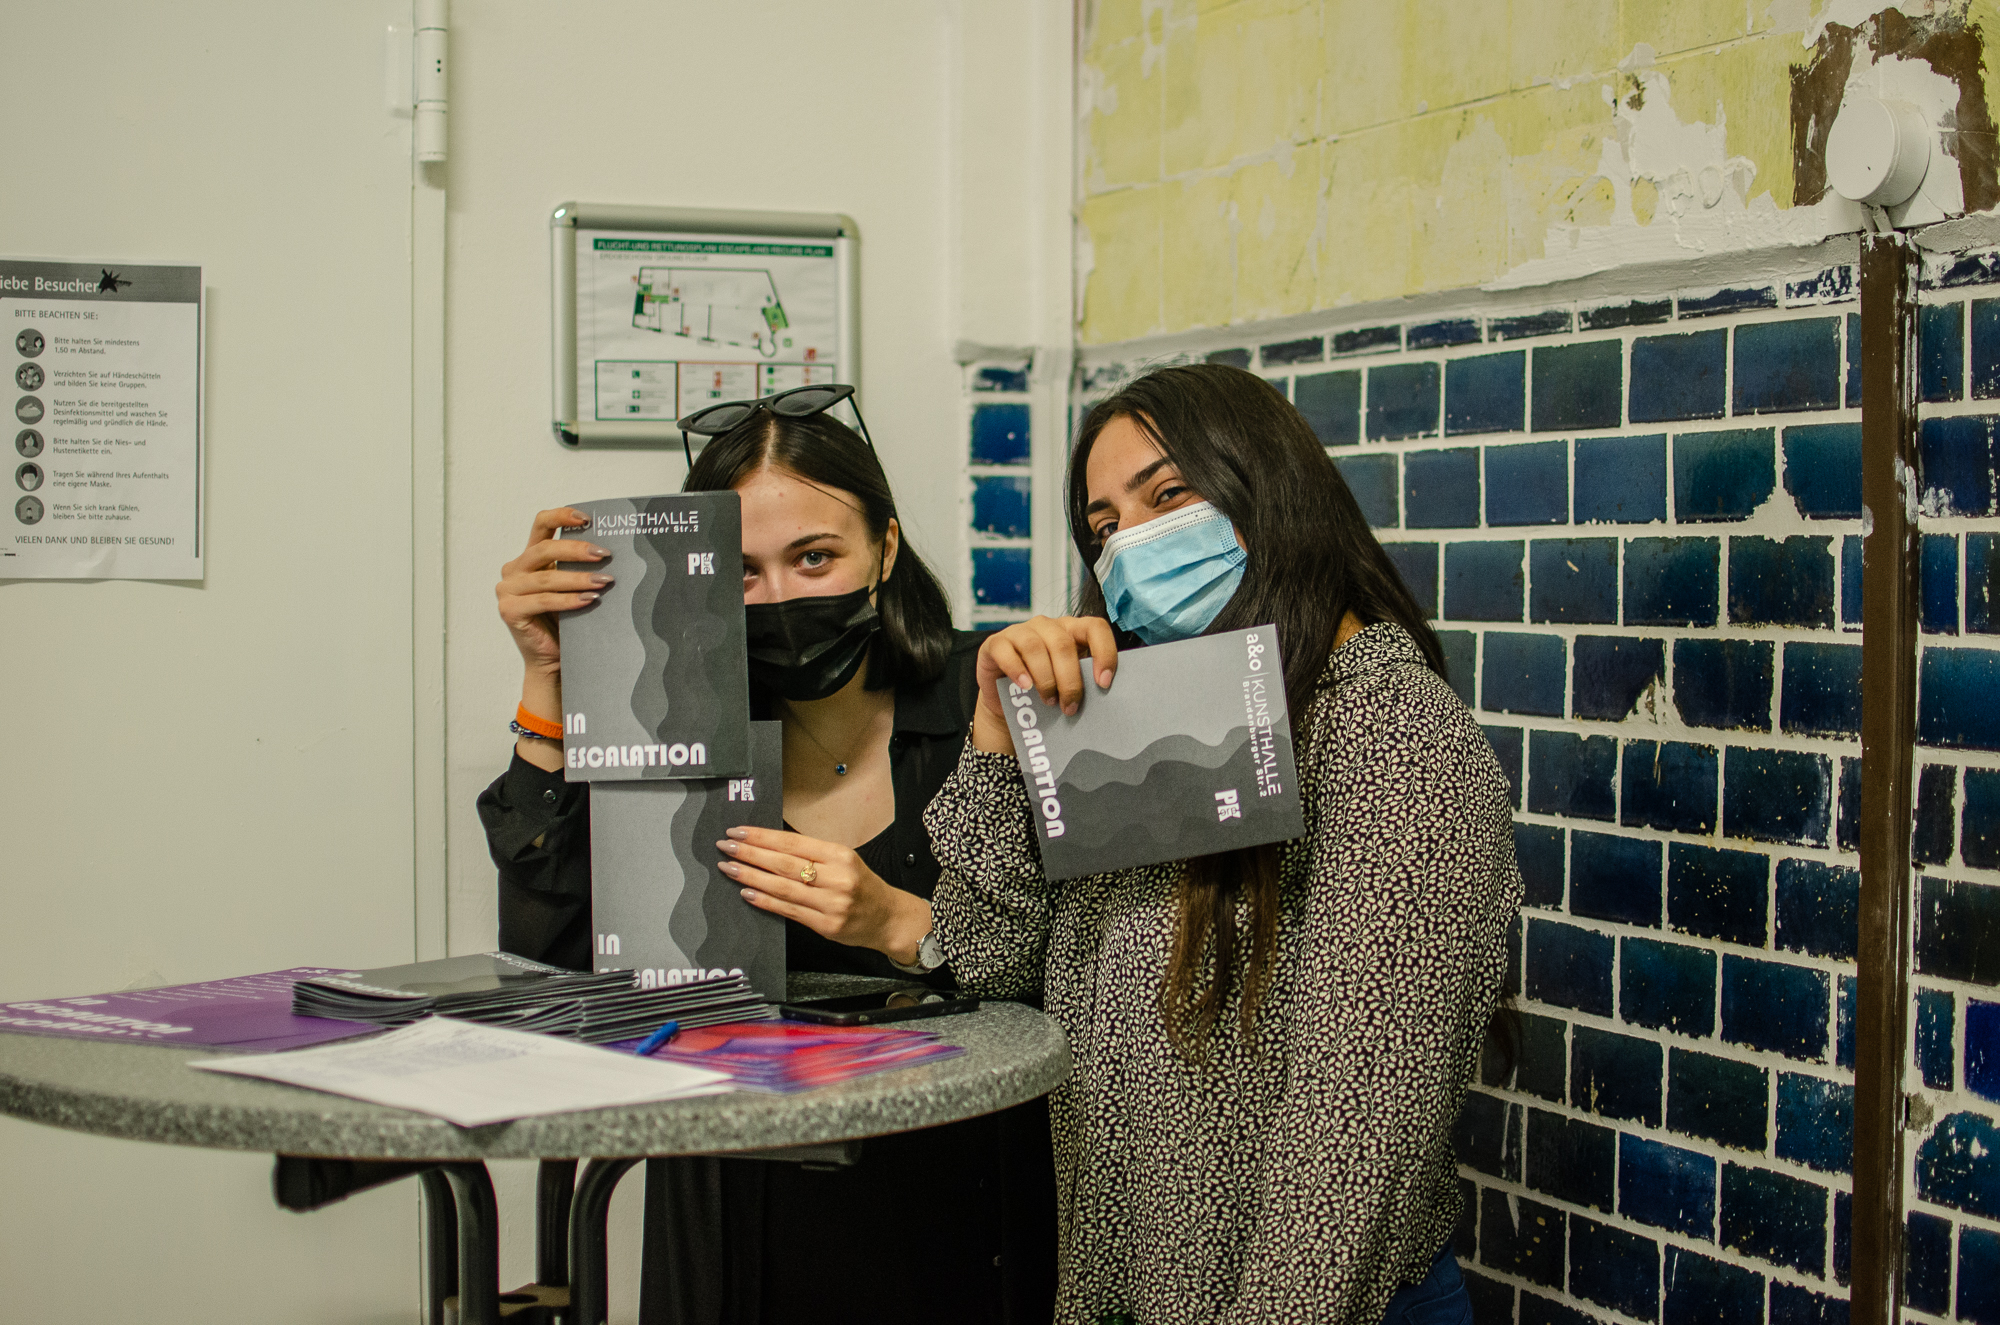 In-Escalation-ao-kunsthalle-PILOTENKUECHE-online-residency-vernissage-photos-Fanni-Papp-17